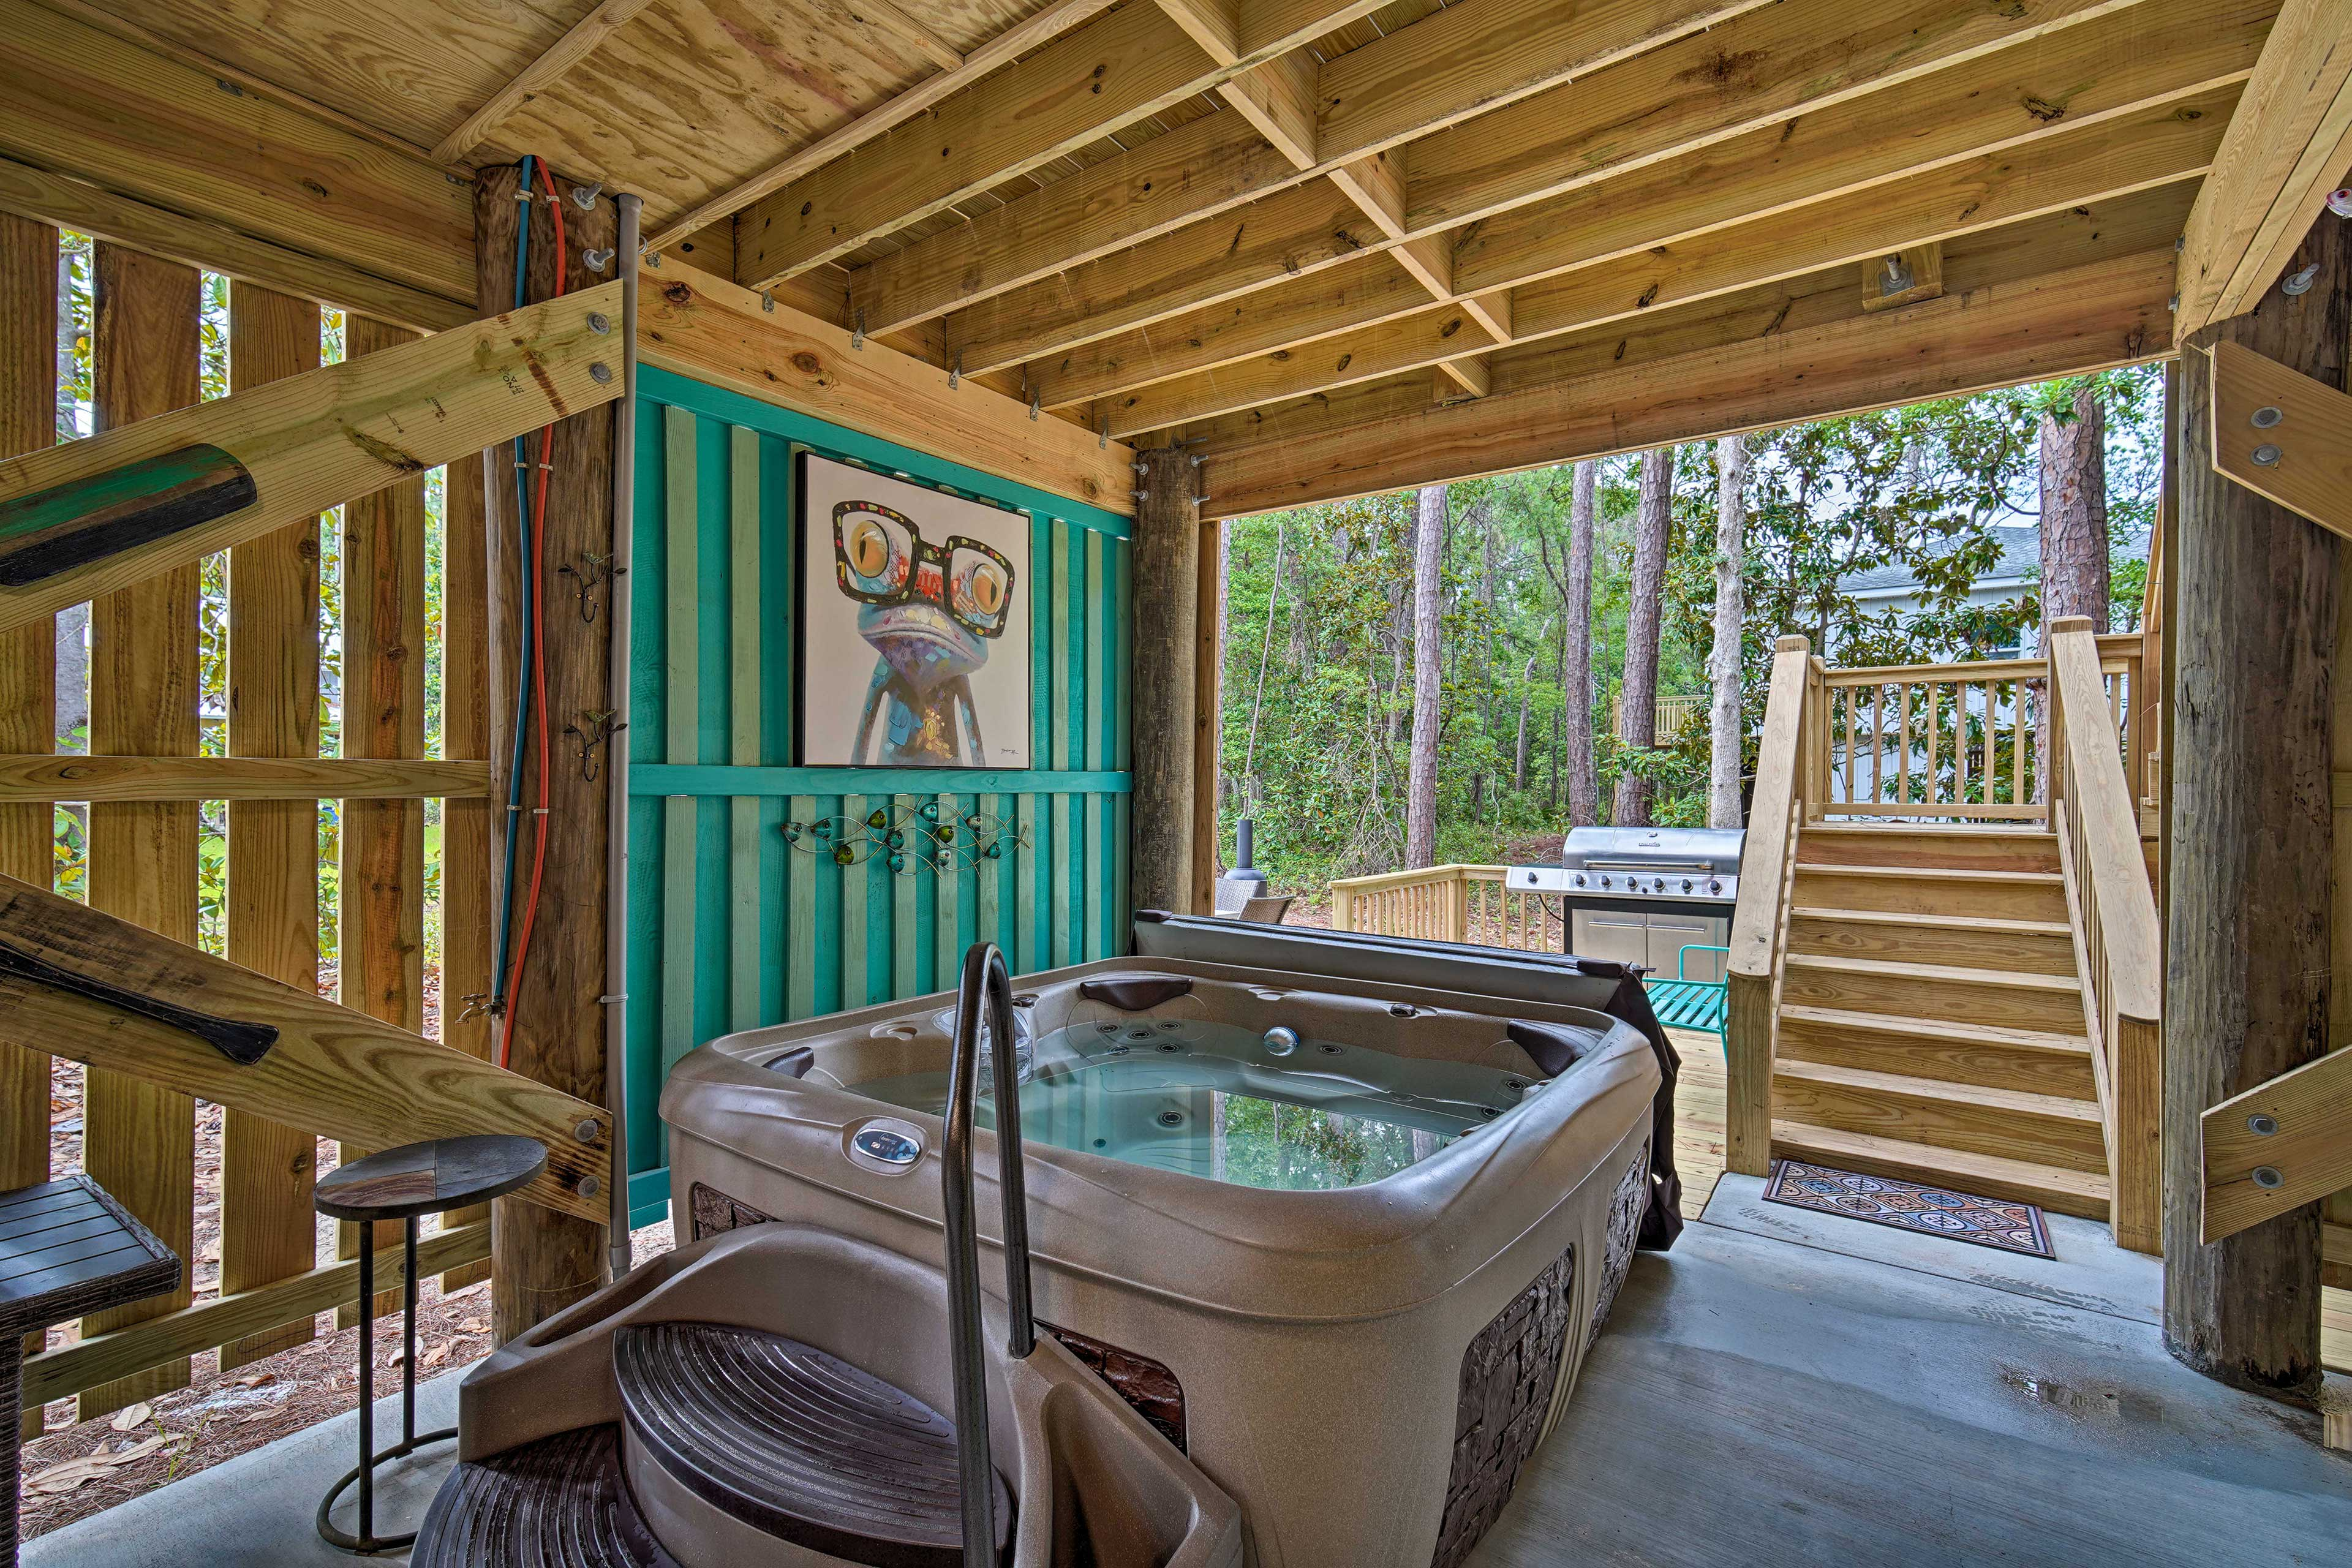 The updated property features a private hot tub, deck, and much more!